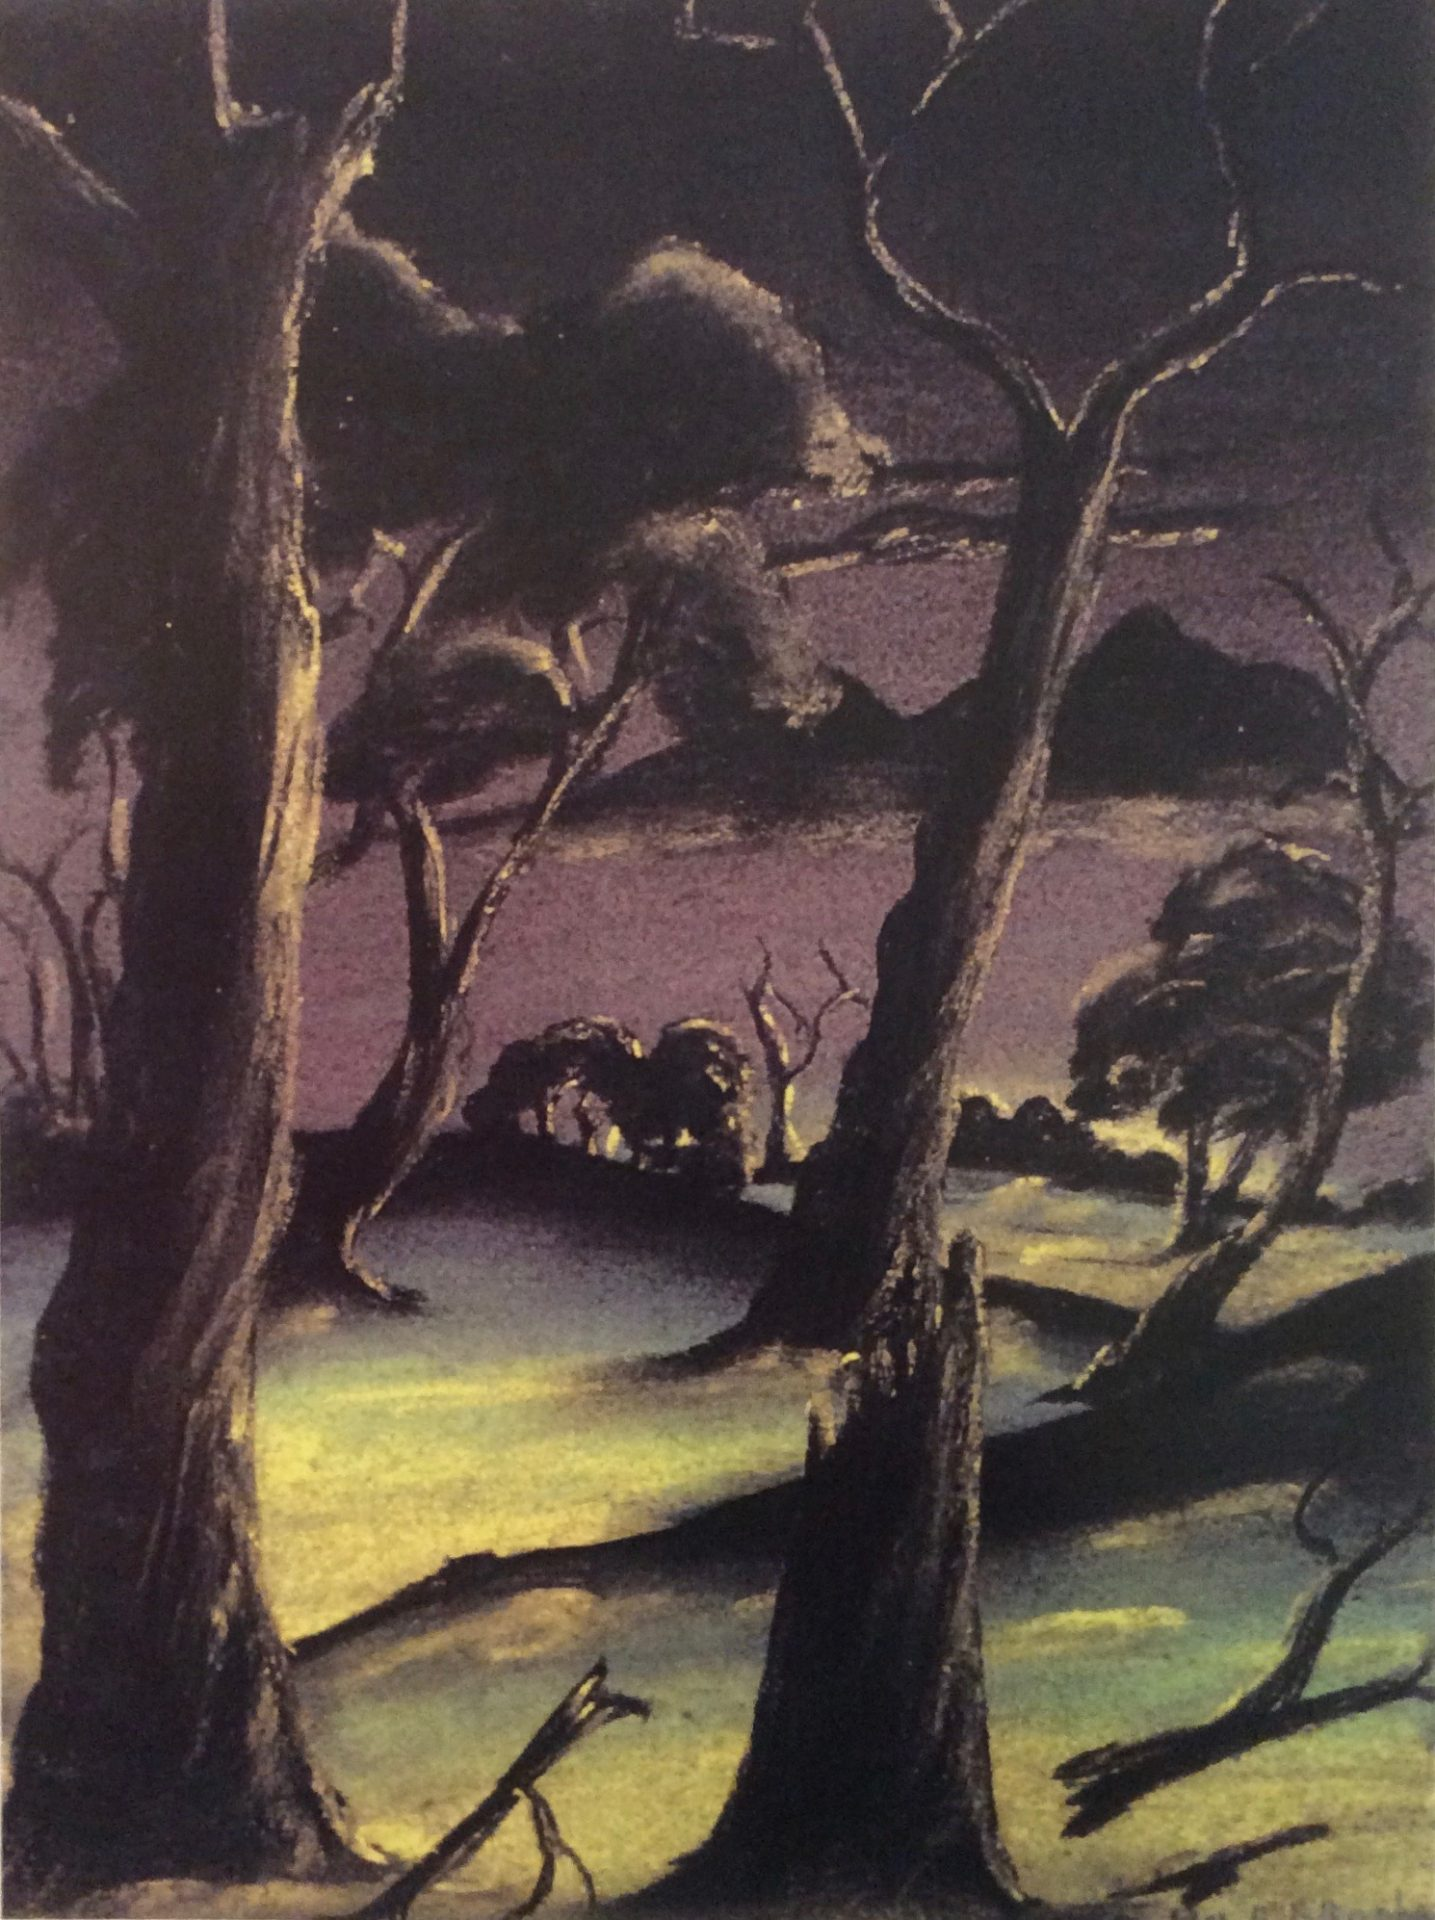 Lovely night by Arthur Bropho, pastel on paper, 18 x 24cm, c.1948. Noel & Lily White Collection, Berndt Museum of Anthropology. [WU7566]